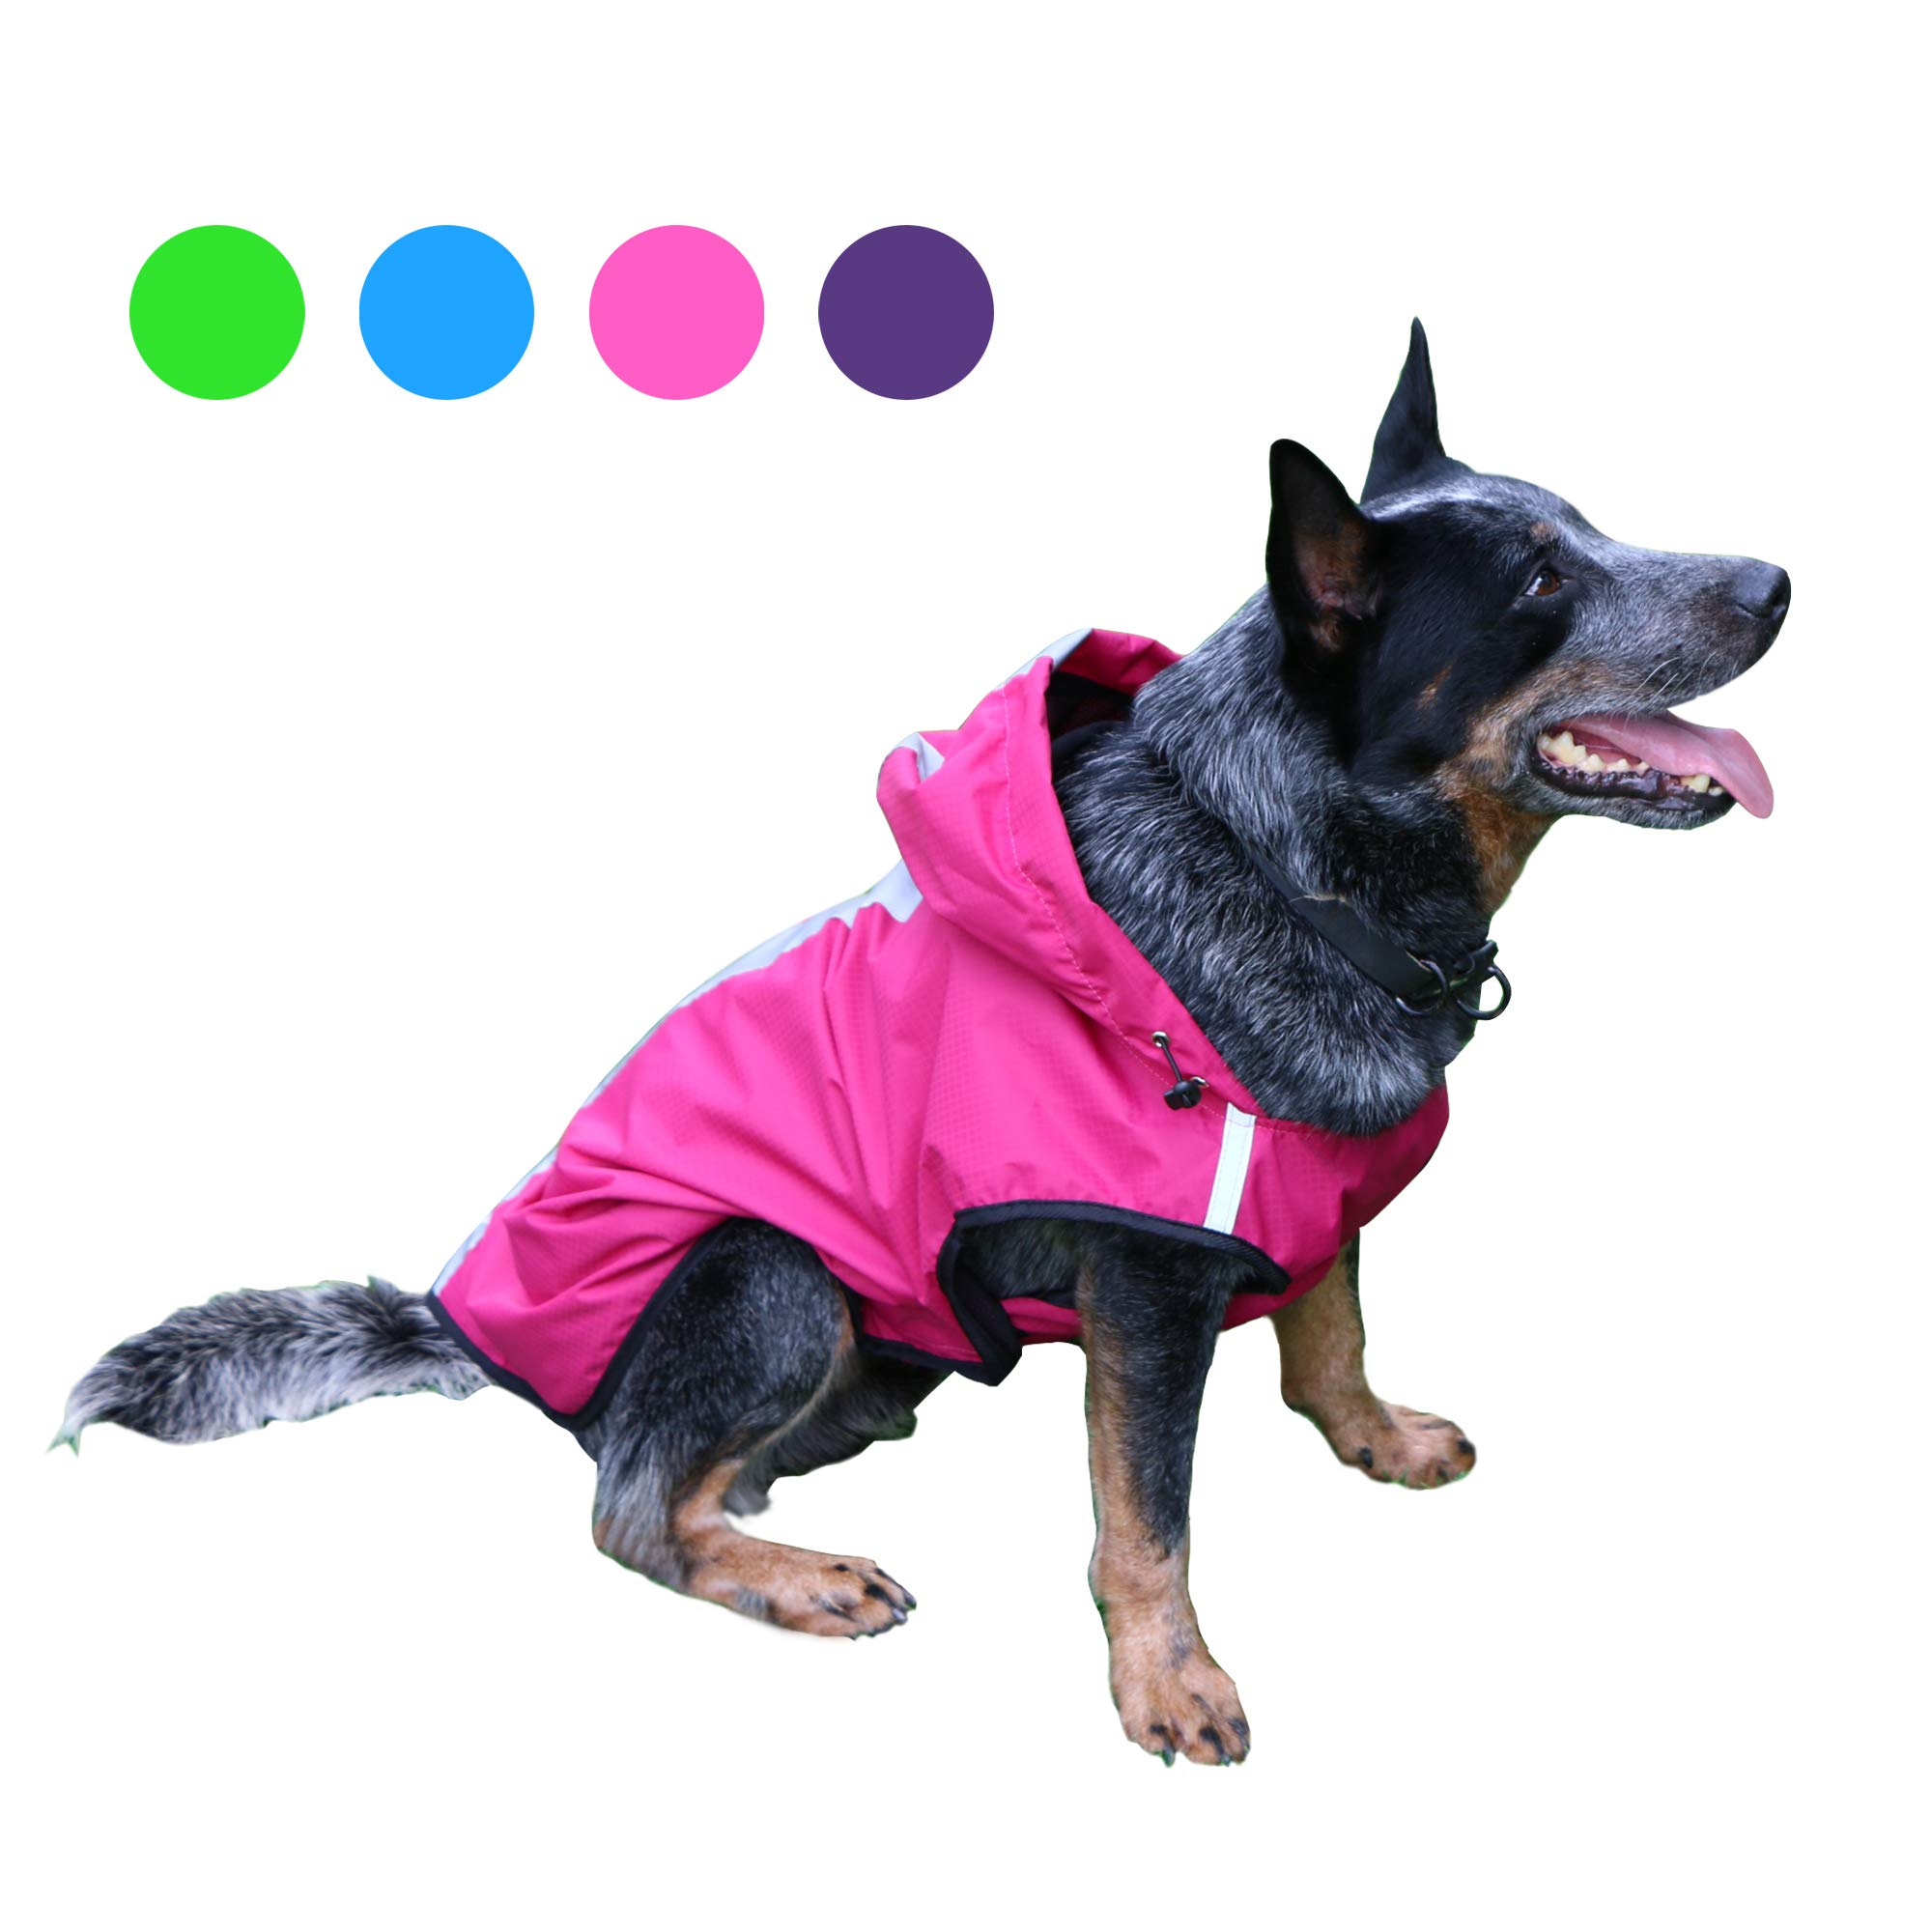 Kamots Beauty Dog Waterproof Raincoat, Lightweight Packable Jacket with Reflective Stripes for High Visibility Safety- Adjustable Hood Poncho for Small Medium Large Dogs (red XXXL) by Kamots Beauty